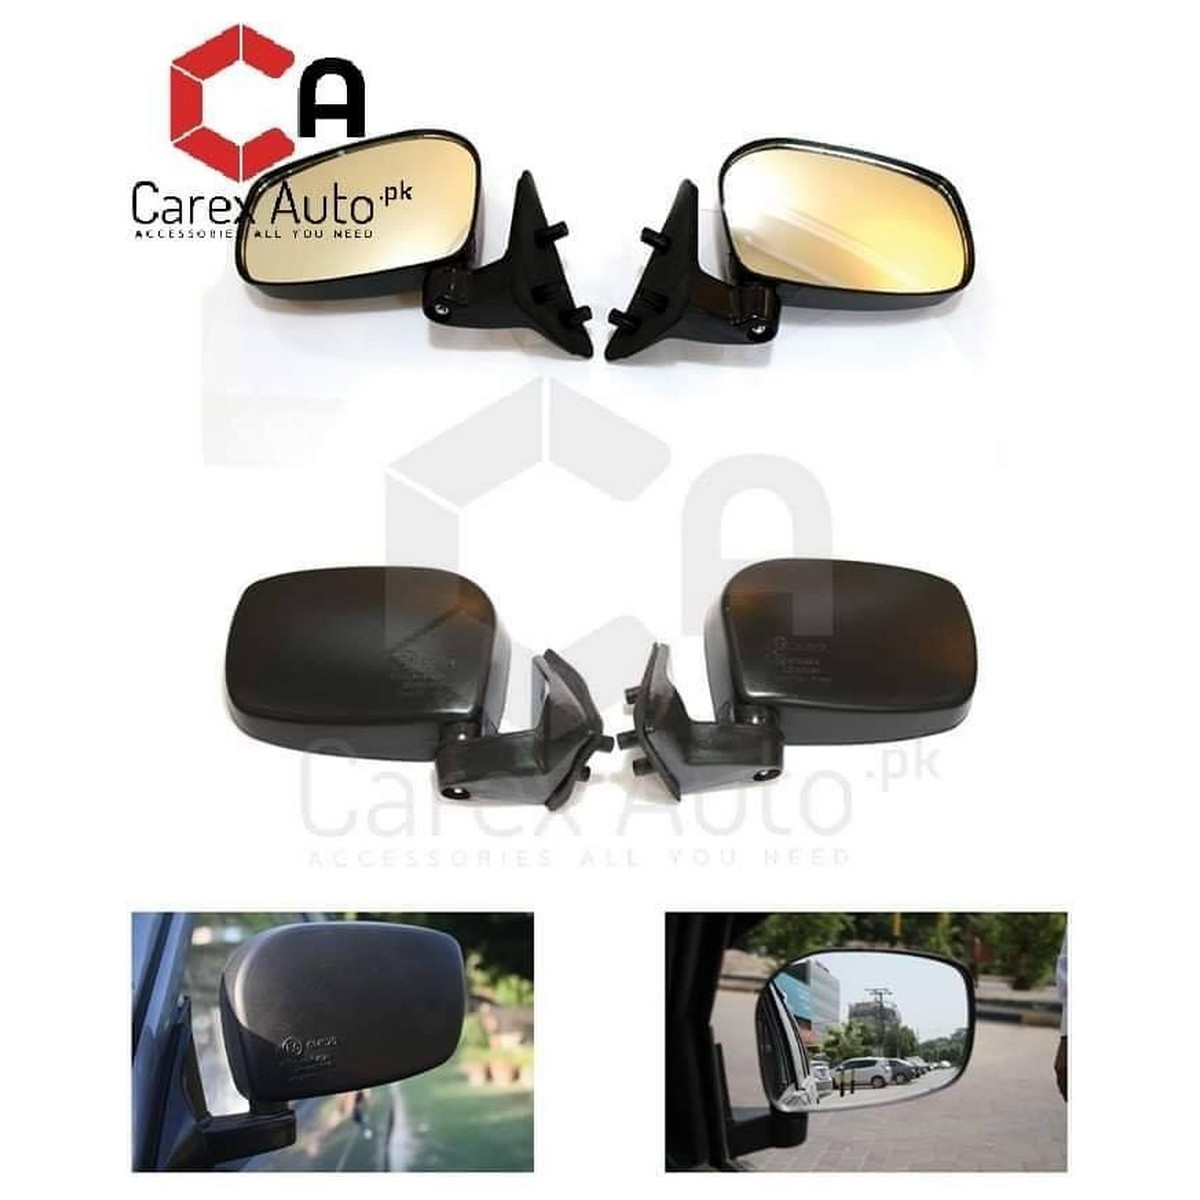 Suzuki Mehran Side Mirrors With Wide Angle View